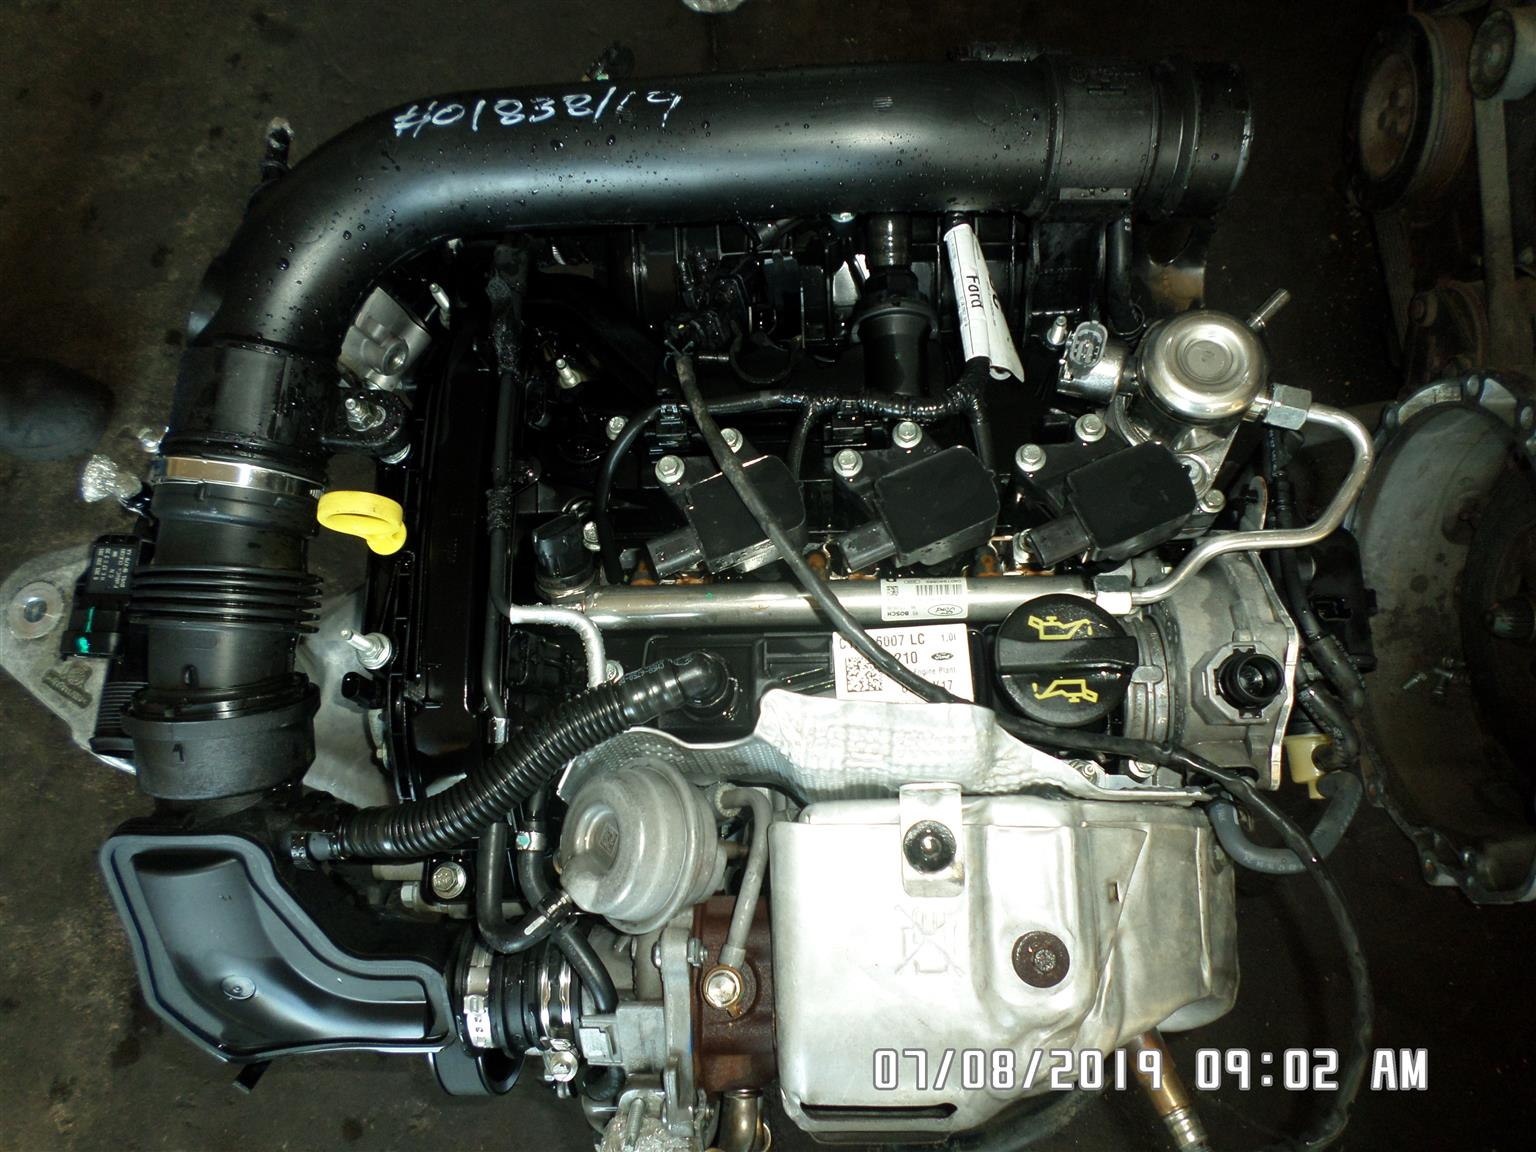 Ford Ecoboost 3 cylinders engine for sale | Junk Mail